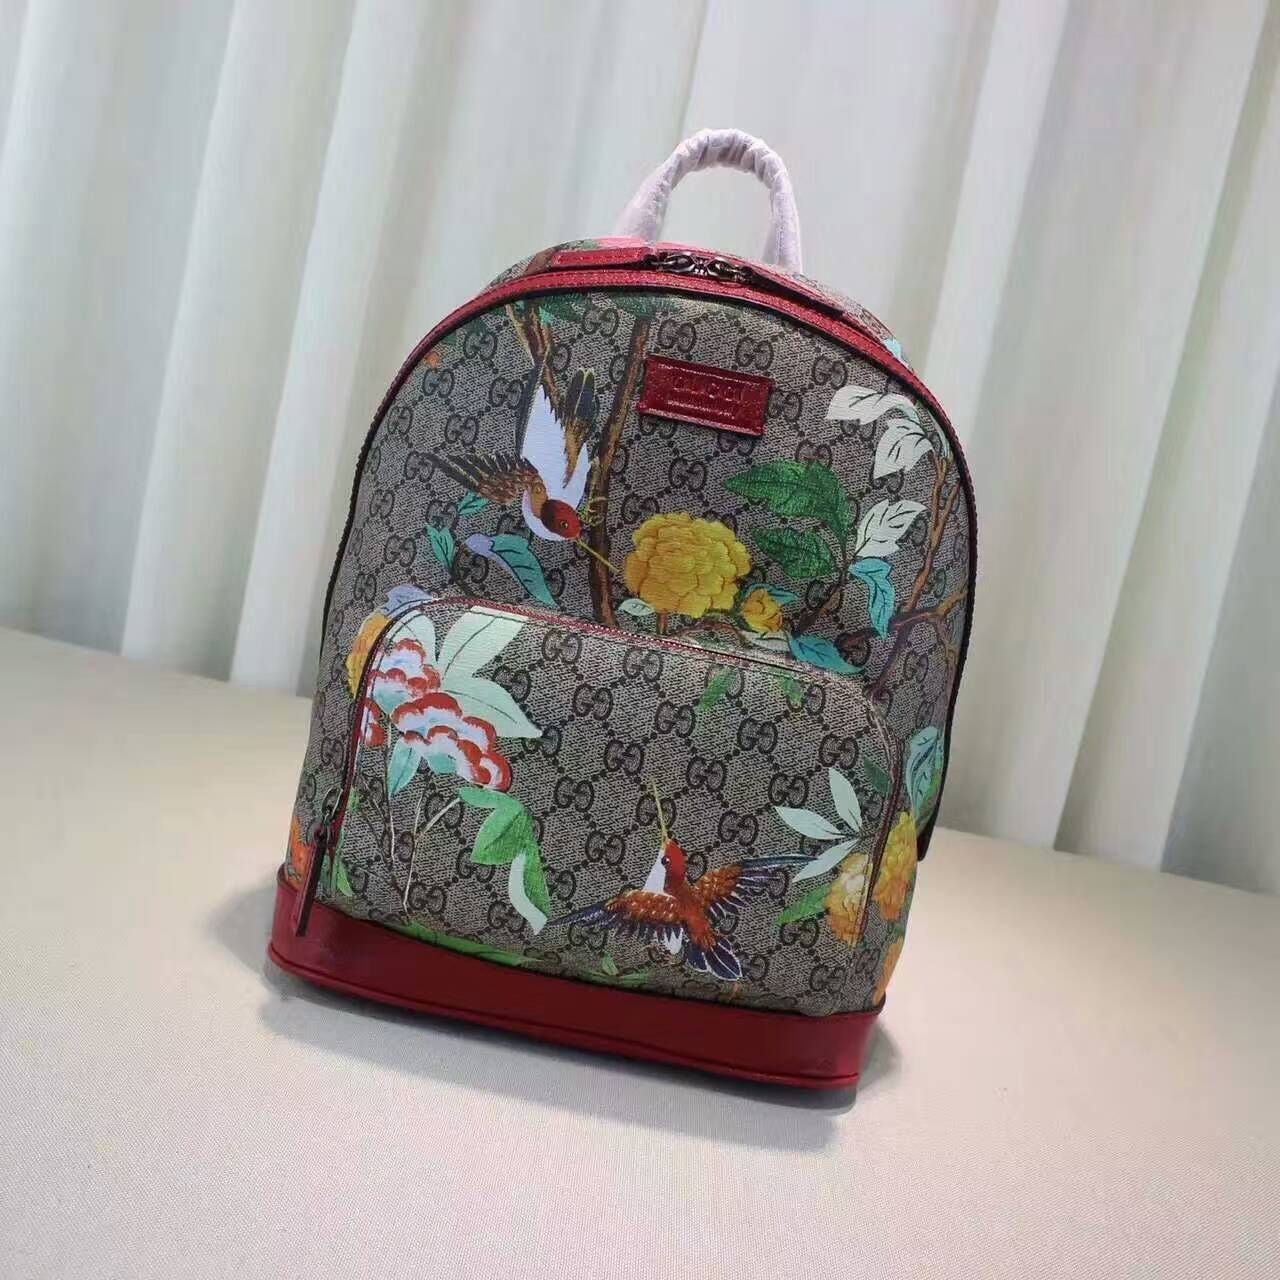 0eac36d73cbb Gucci blooms backpack supreme canvas backpack with blooms print Front  zipper pocket 427042 size 25x32x11cm G4 whatsapp +8615503787453